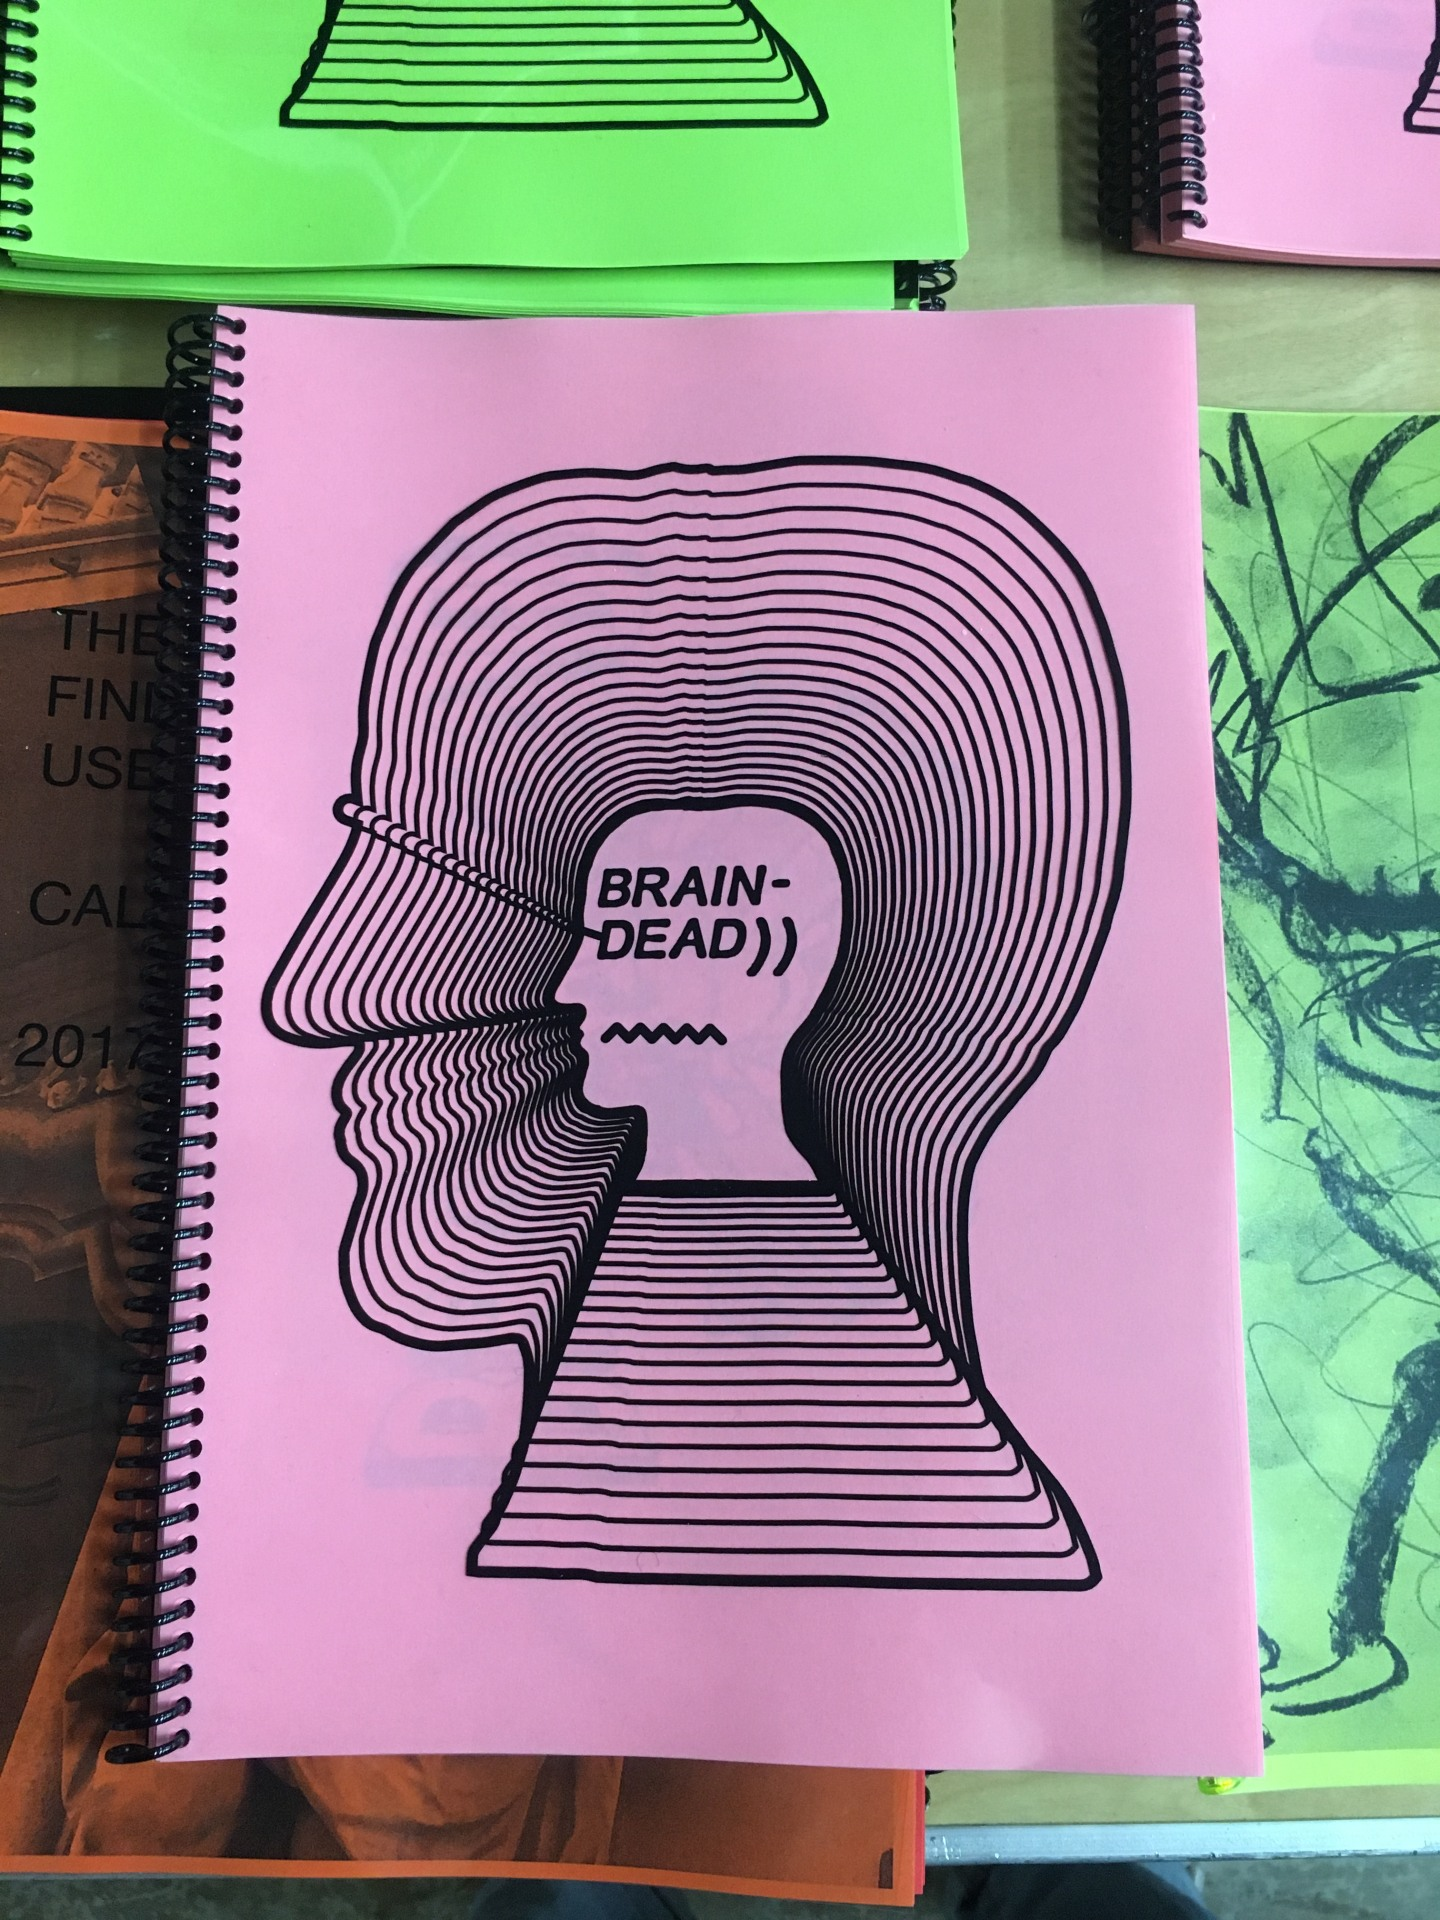 21 things you need to touch with your hands at this year's New York Art Book Fair